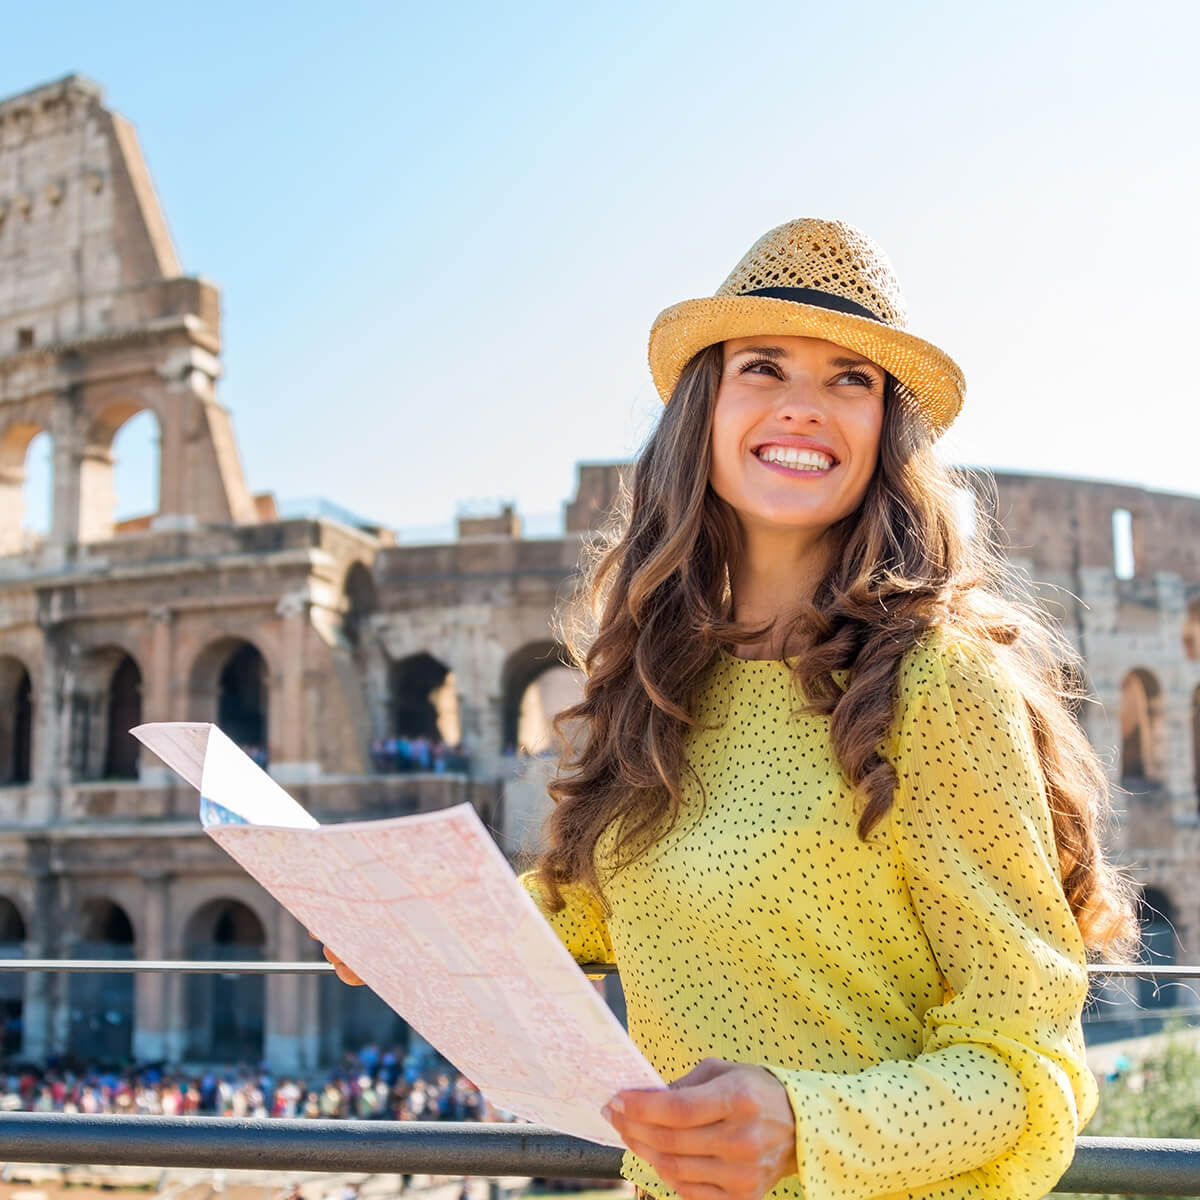 Top 10 beauty tips for travel